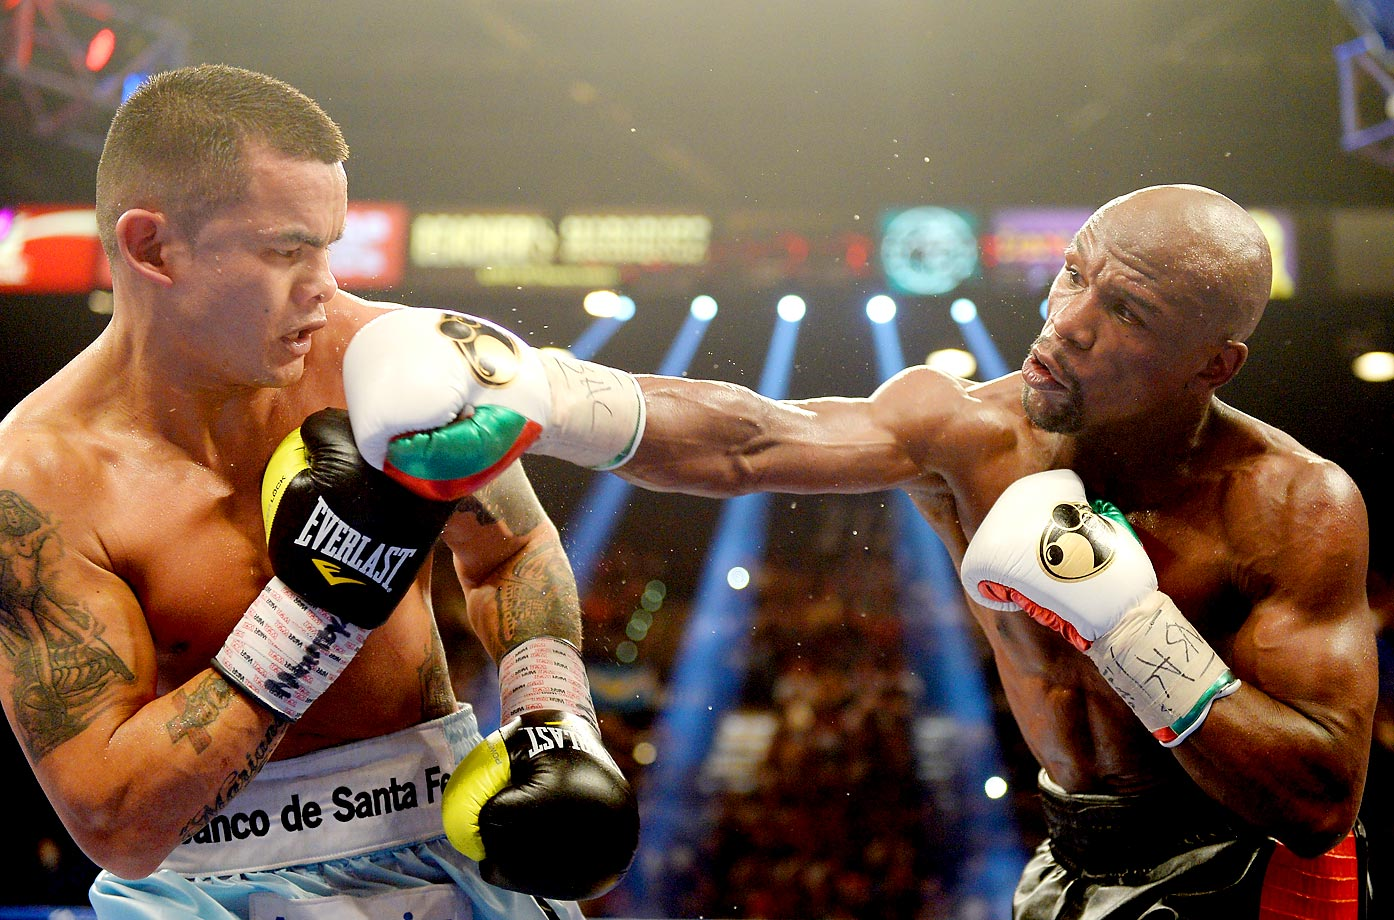 Floyd Mayweather ran his record to 47-0 with a tougher-than-expected fight against Marcos Maidana. Two ringside judges scored it 116-111 for Mayweather, while the third had it 115-112.